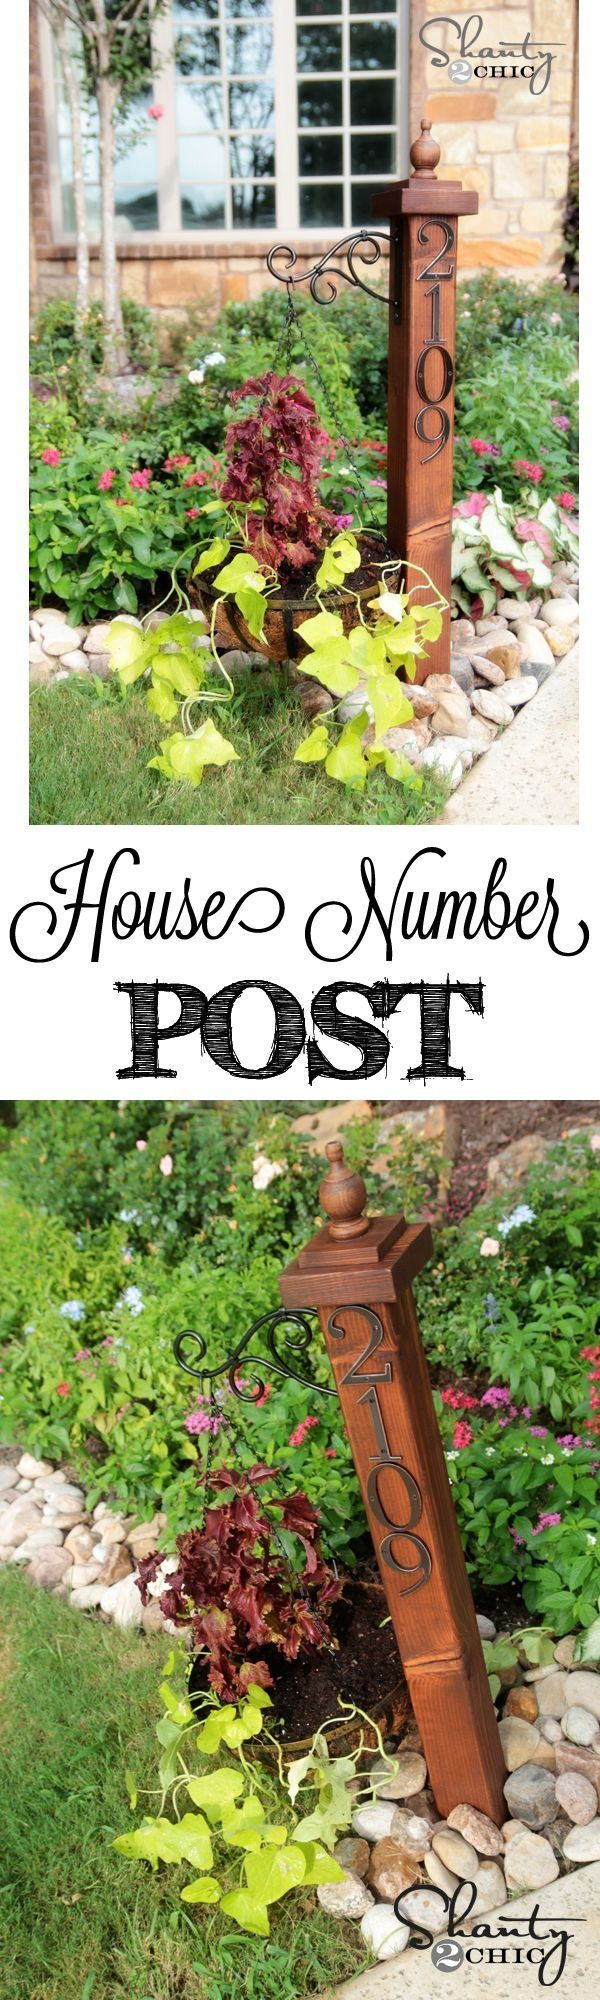 16 best tiered plant stands images on pinterest gardening